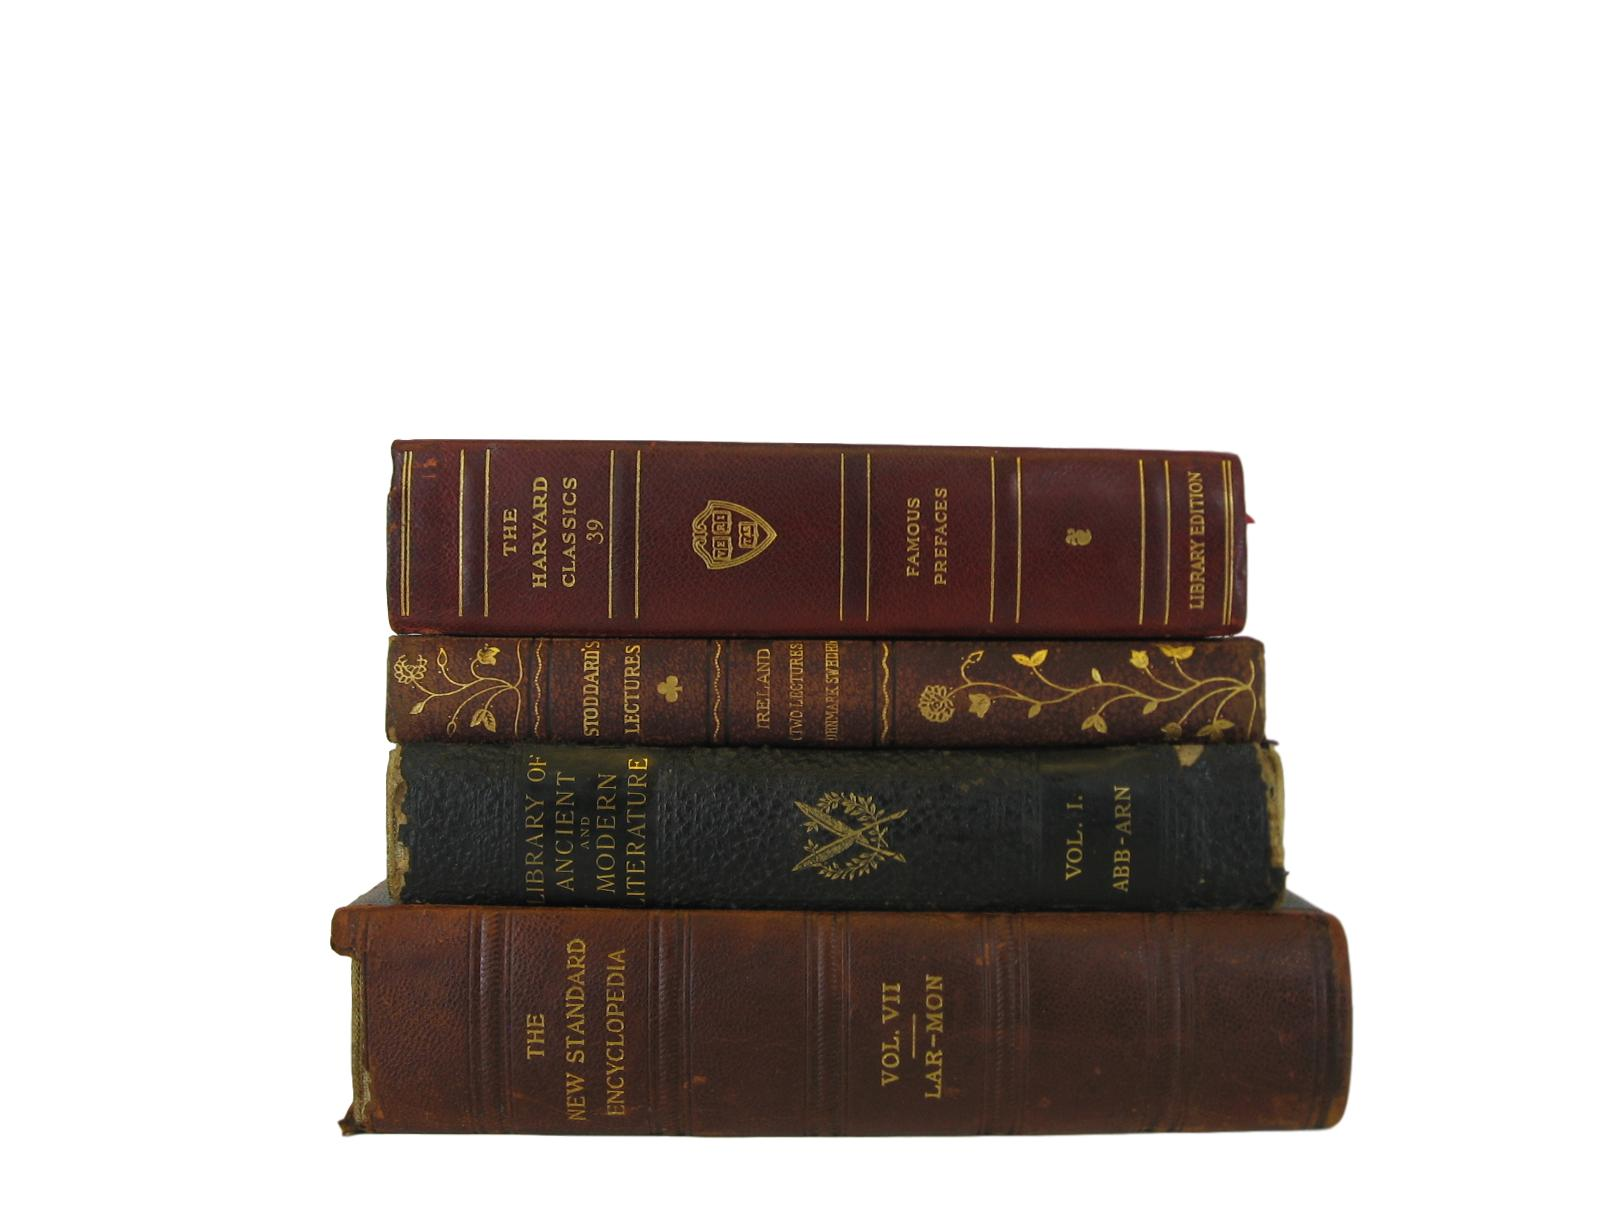 Antique Leather Bound Books, S/4